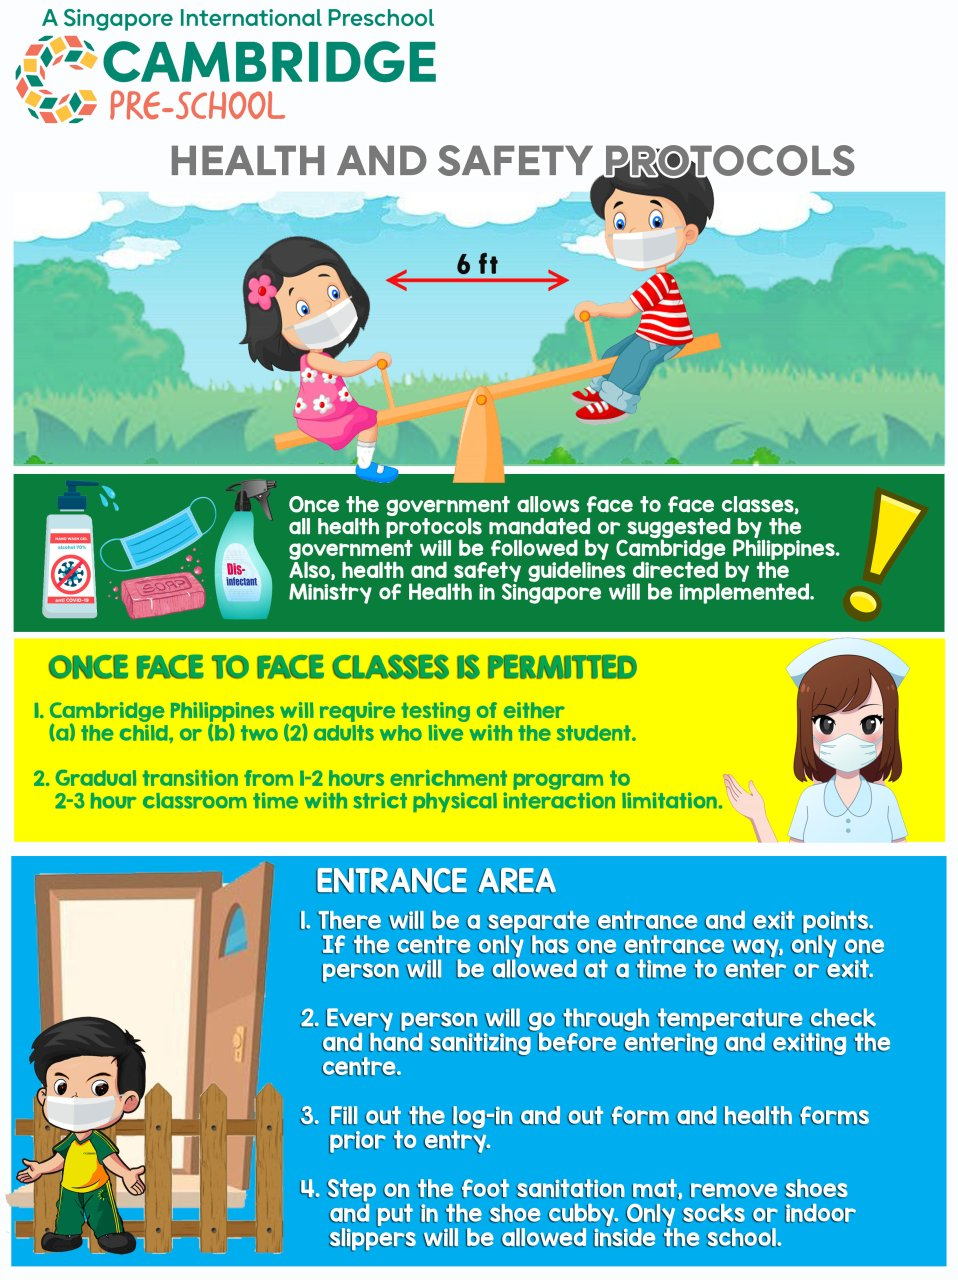 Cambridge Child Development Centre - Health and Safety Protocols for Face-to-Face Classes 1